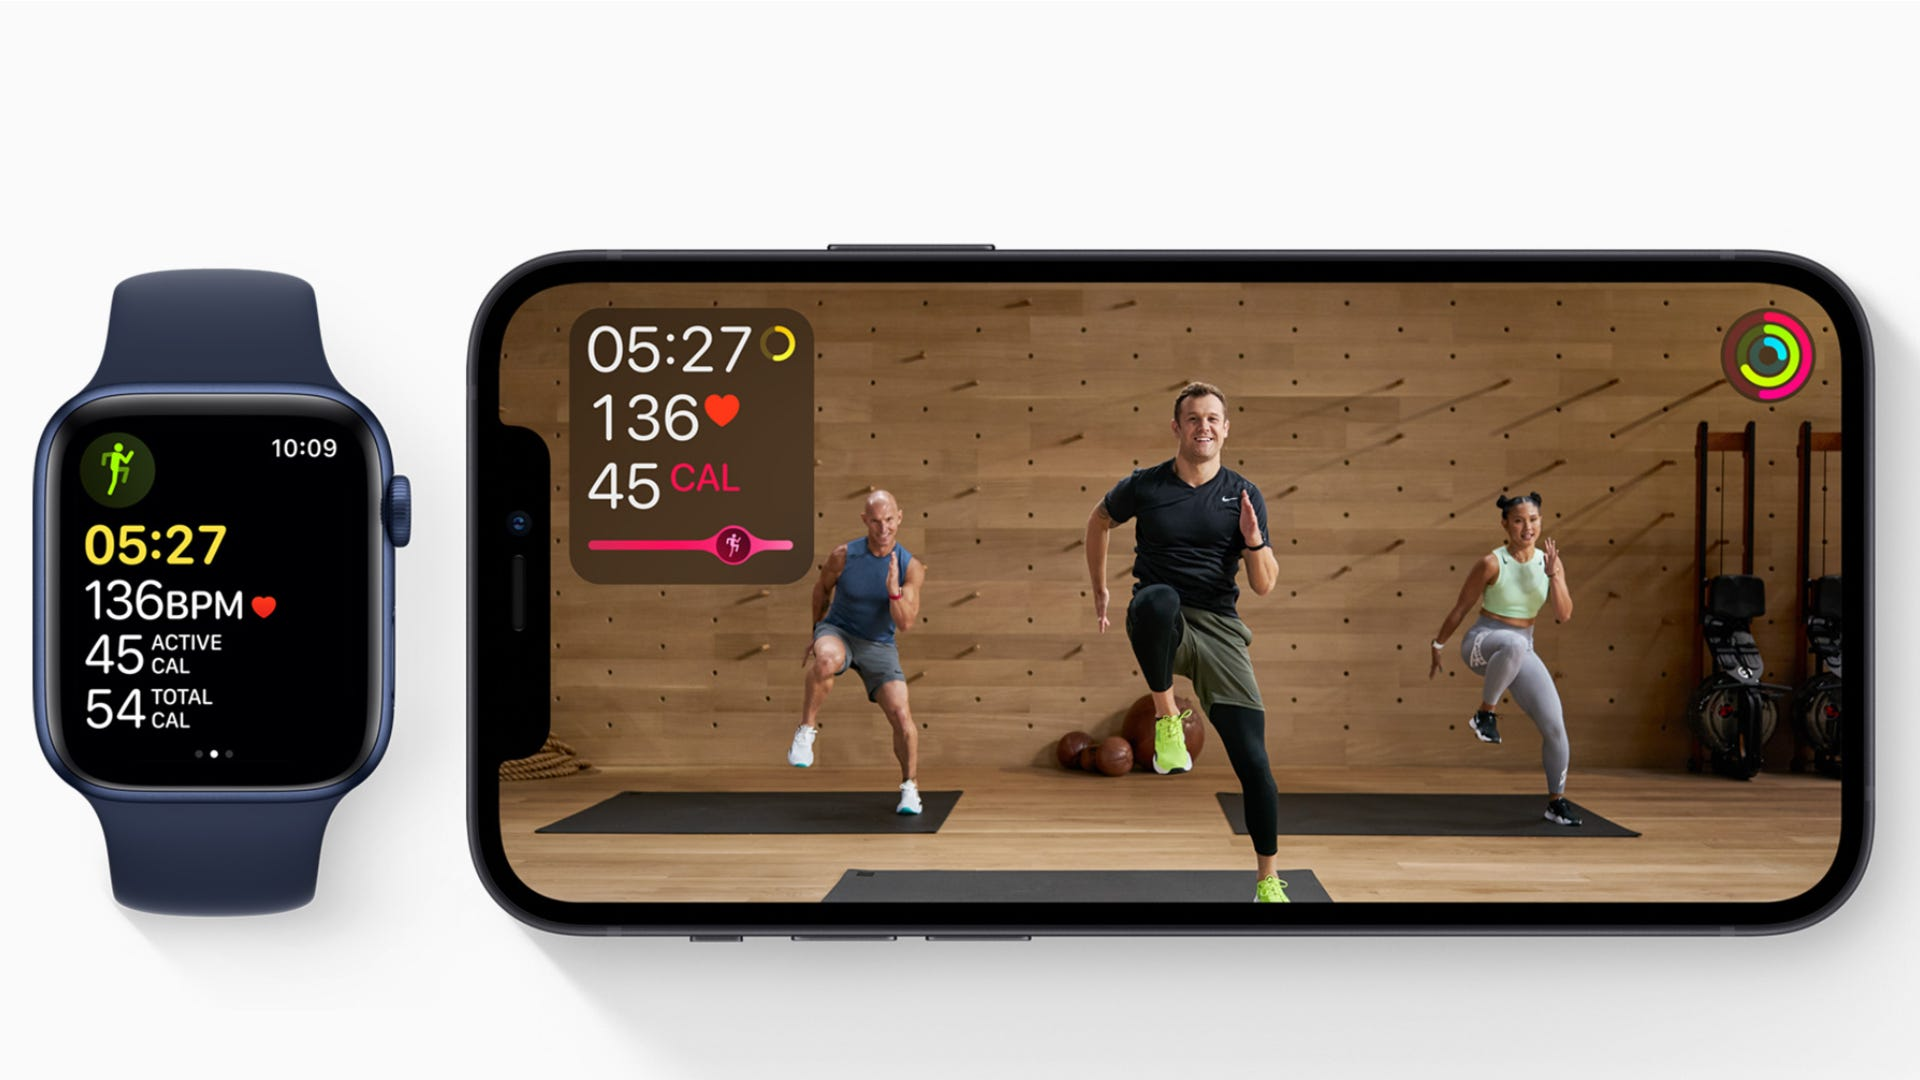 Apple Fitness+ video with Apple Watch next to it with active workout